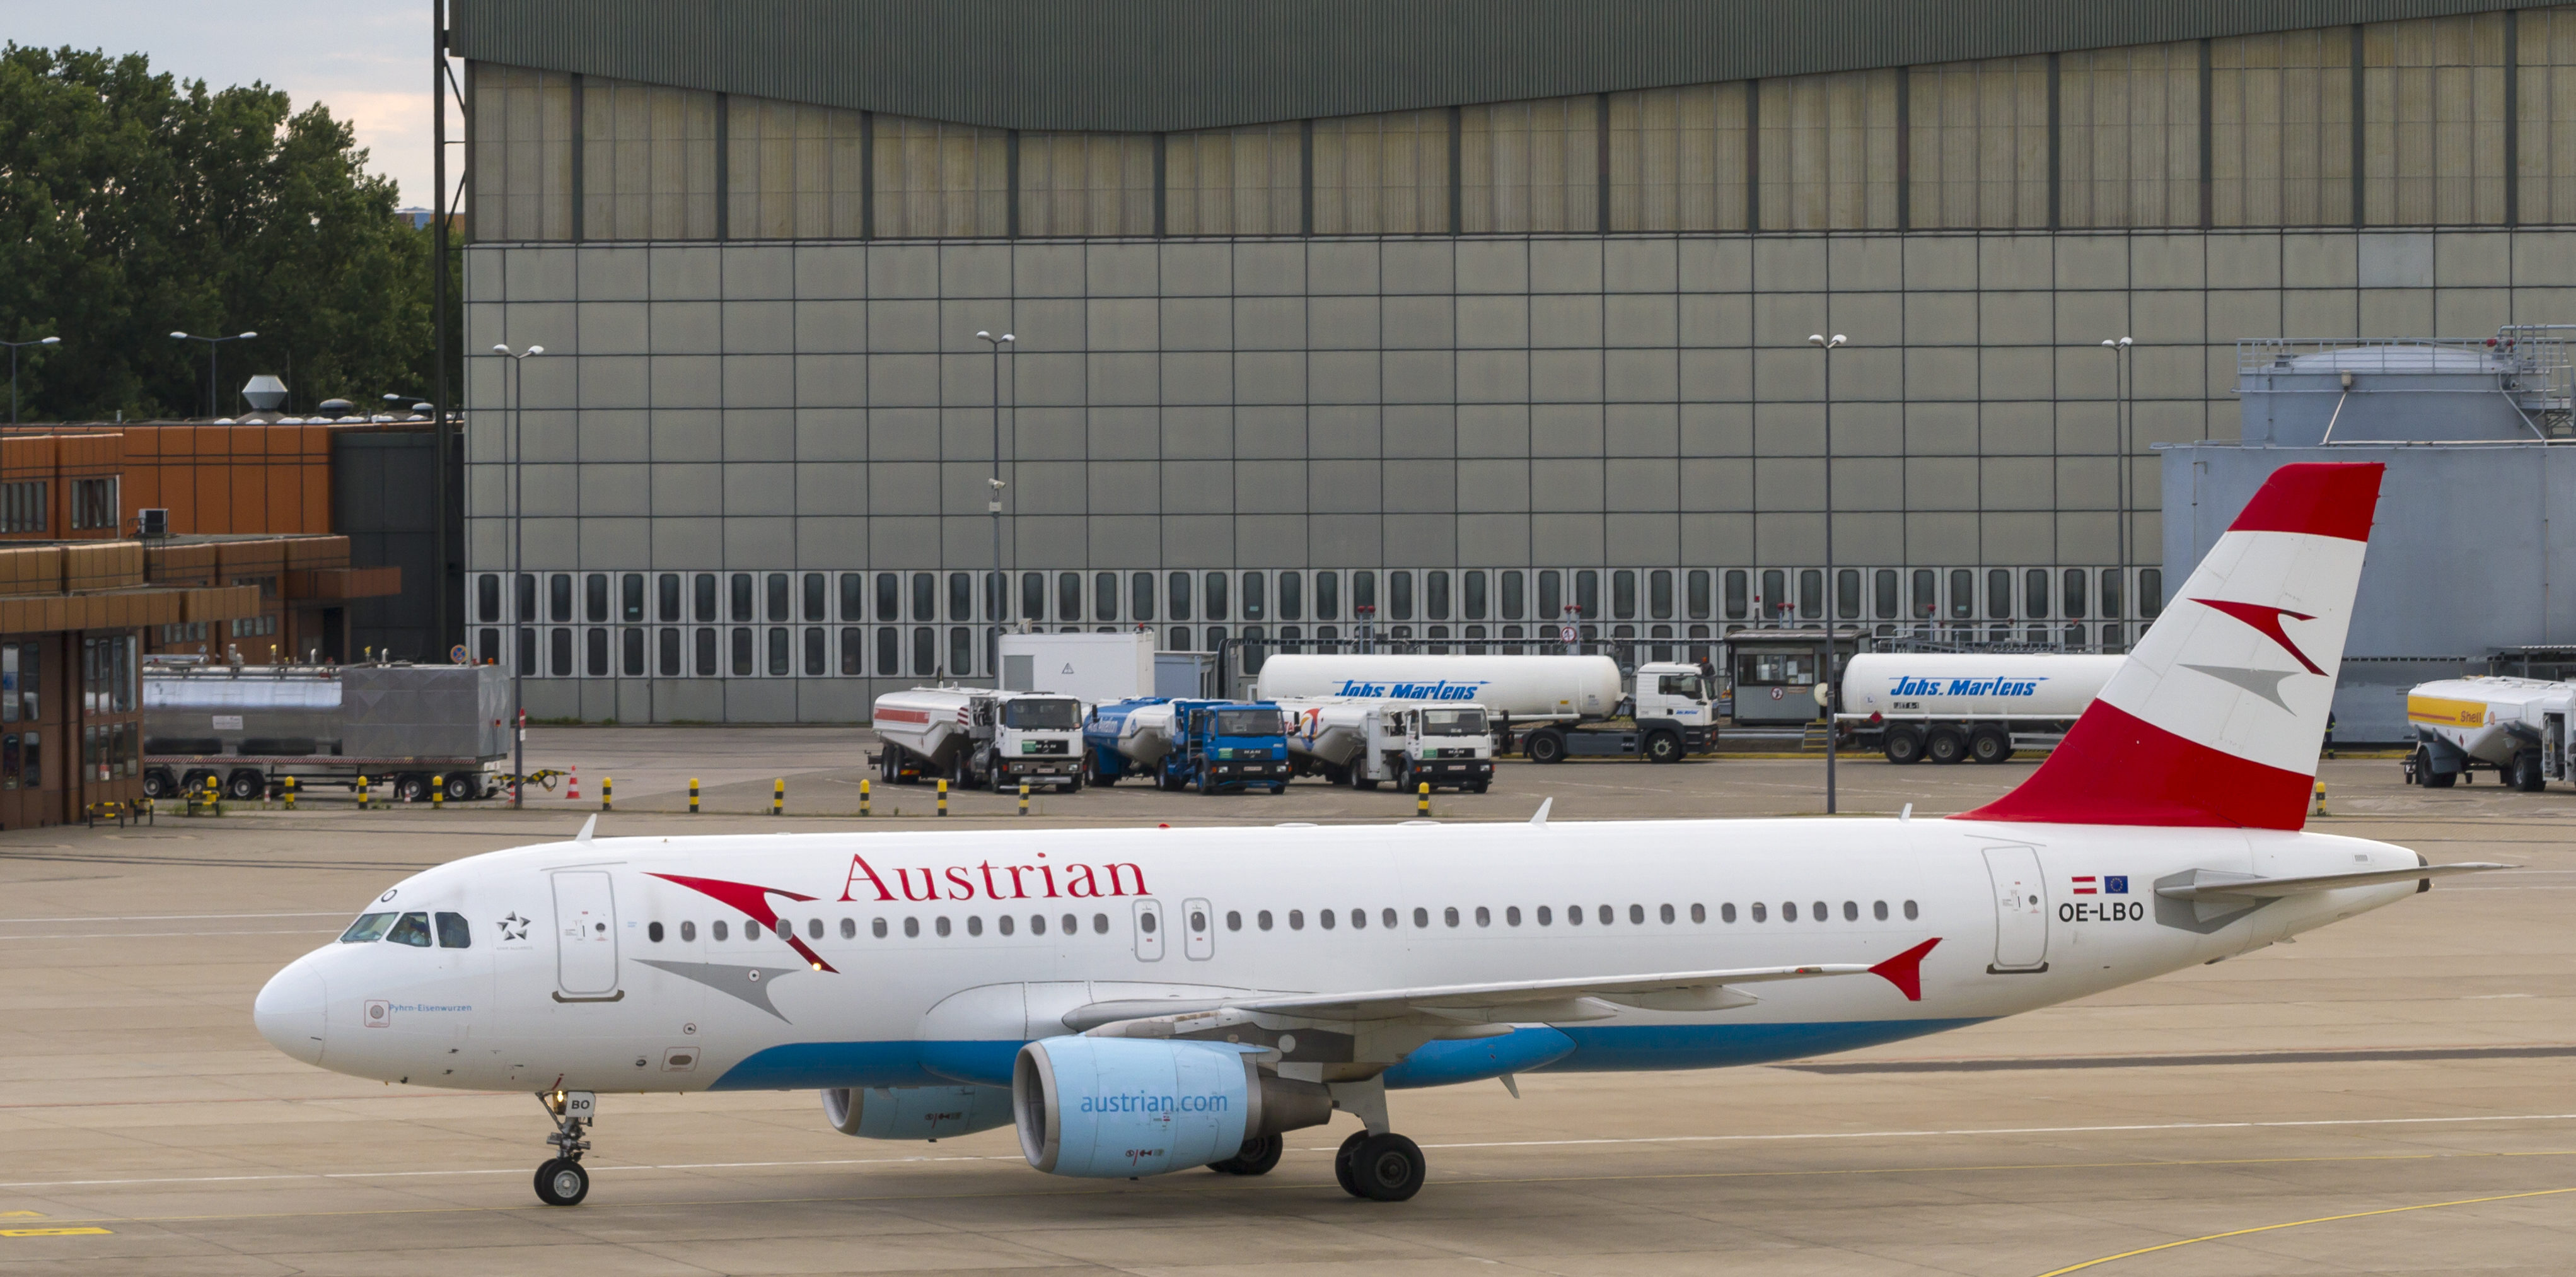 En Airbus A320-200 fra Austrian Airlines. Foto: © Thorbjørn Brunander Sund, Danish Aviation Photo